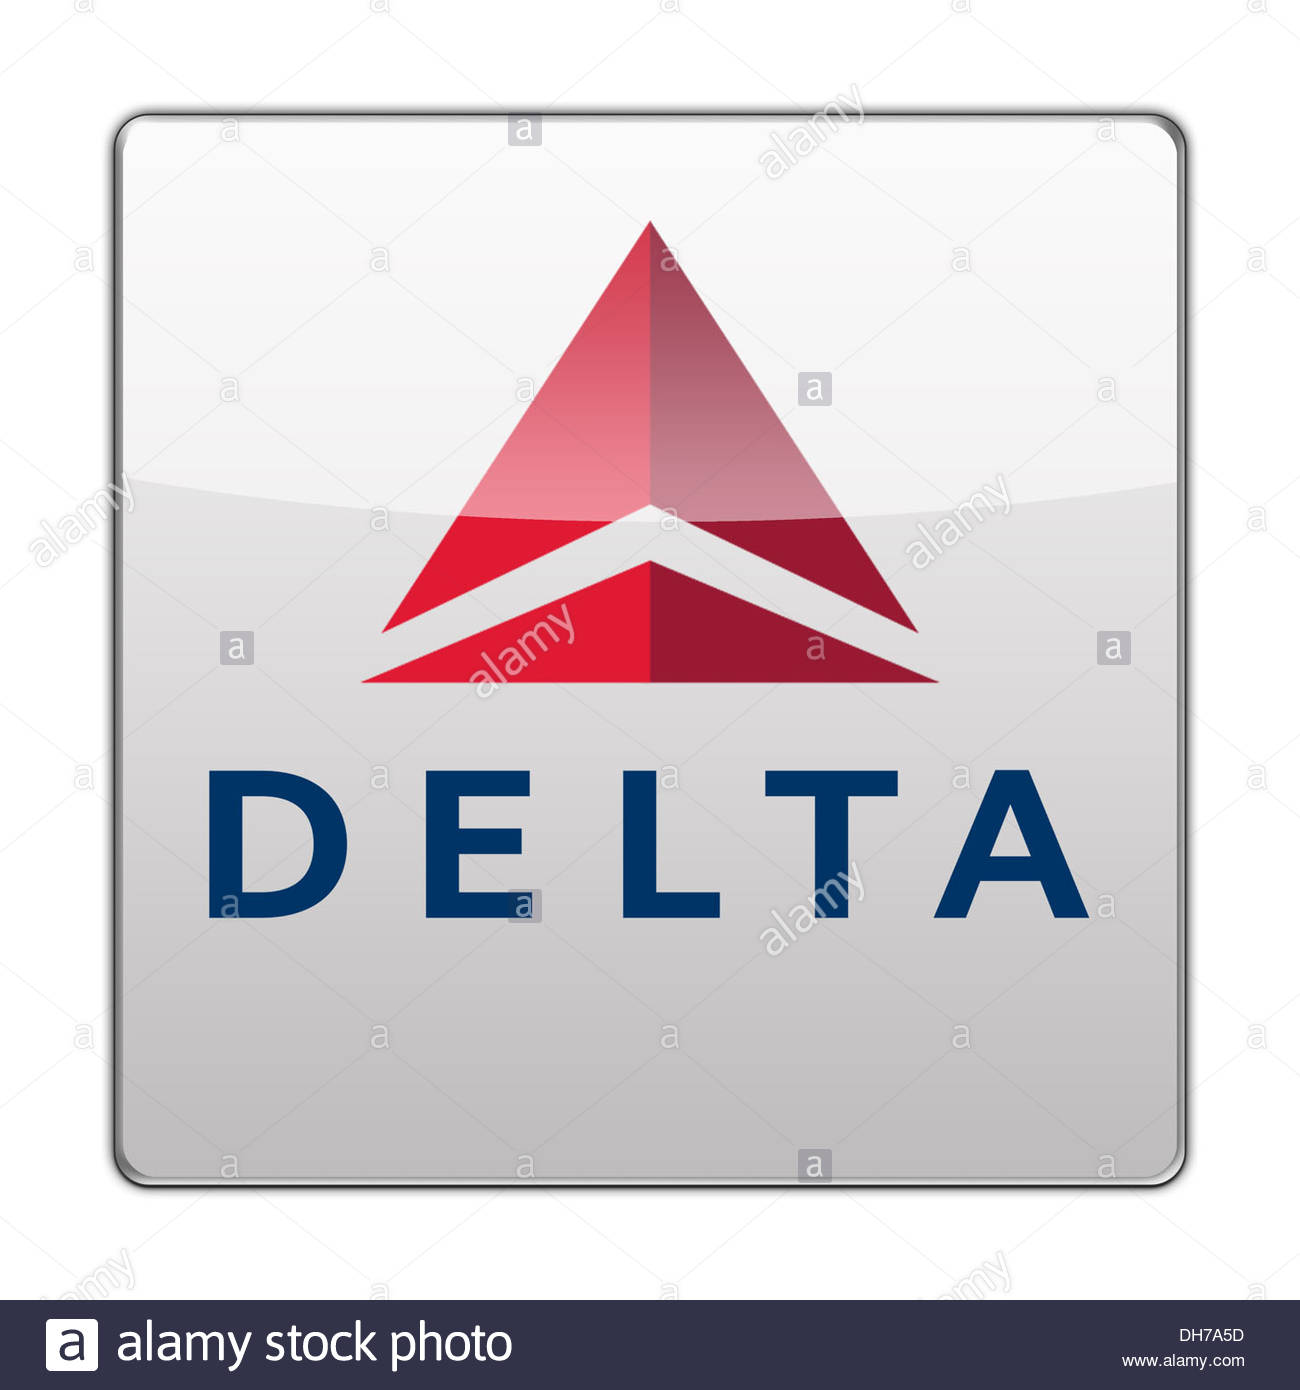 Delta airlines stock symbol gallery symbols and meanings delta airlines icon logo app stock photo royalty free image delta airlines icon logo app biocorpaavc buycottarizona Choice Image